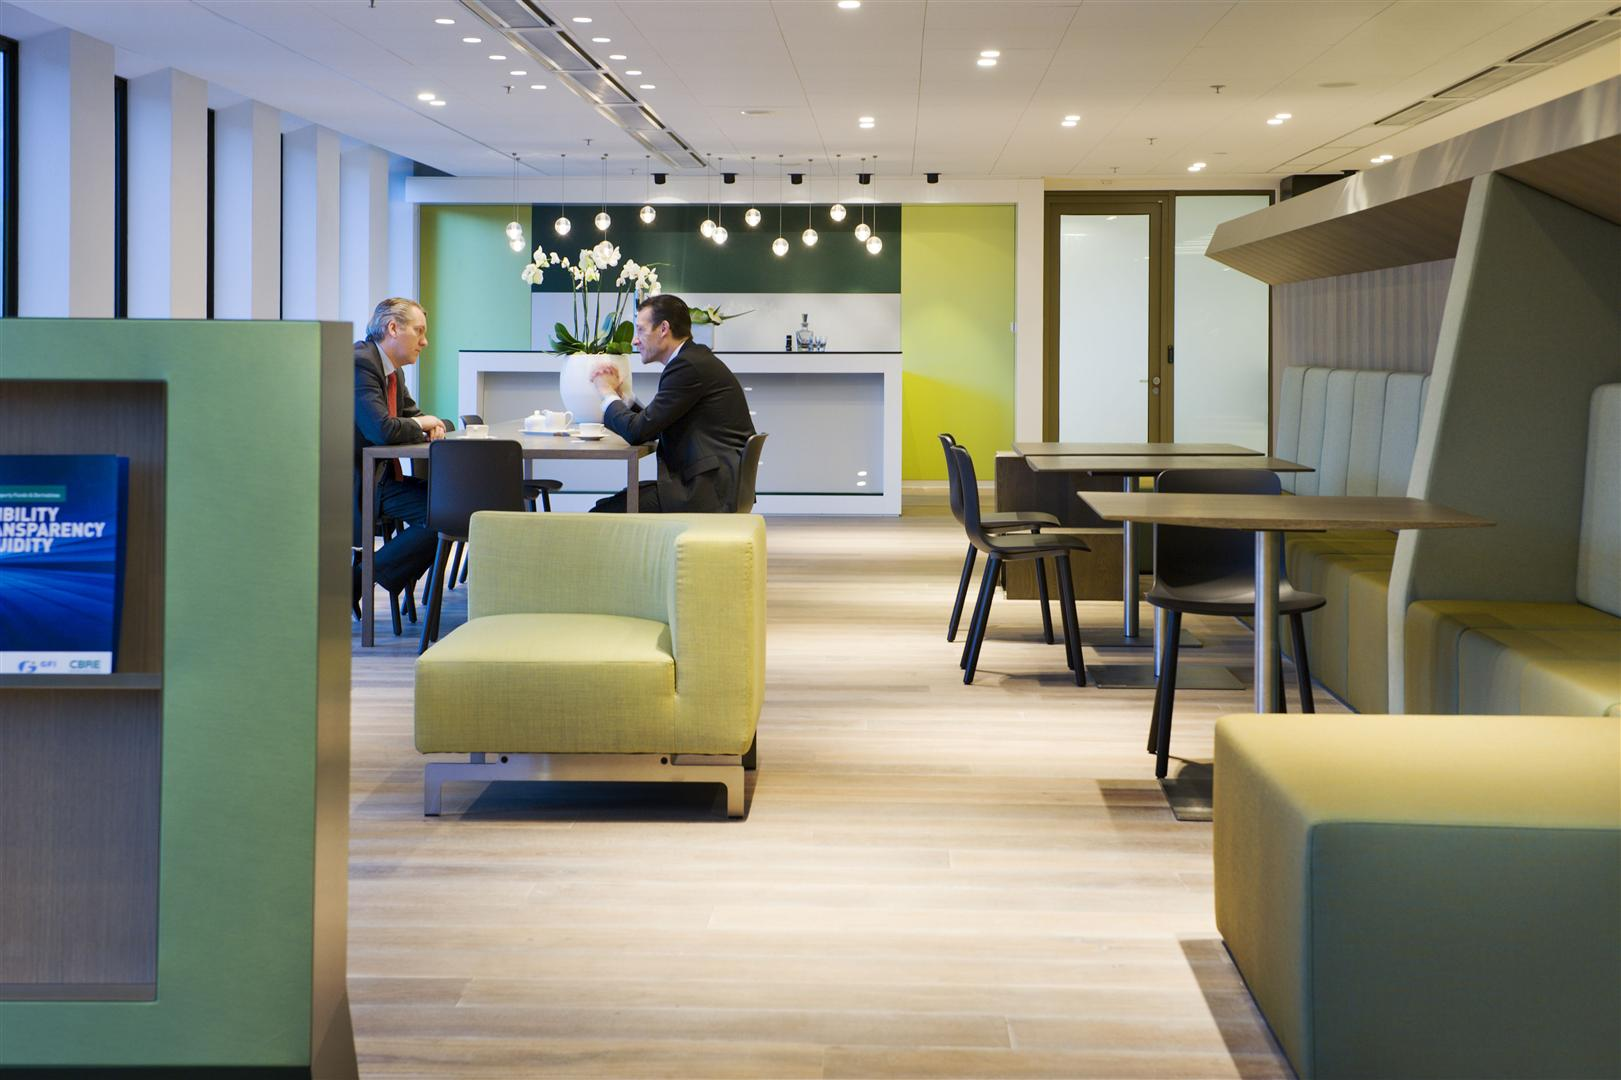 CBRE - Case Study - CBRE HQ The Netherlands - Symphony Offices, Zuidas, Amsterdam - Interior 02